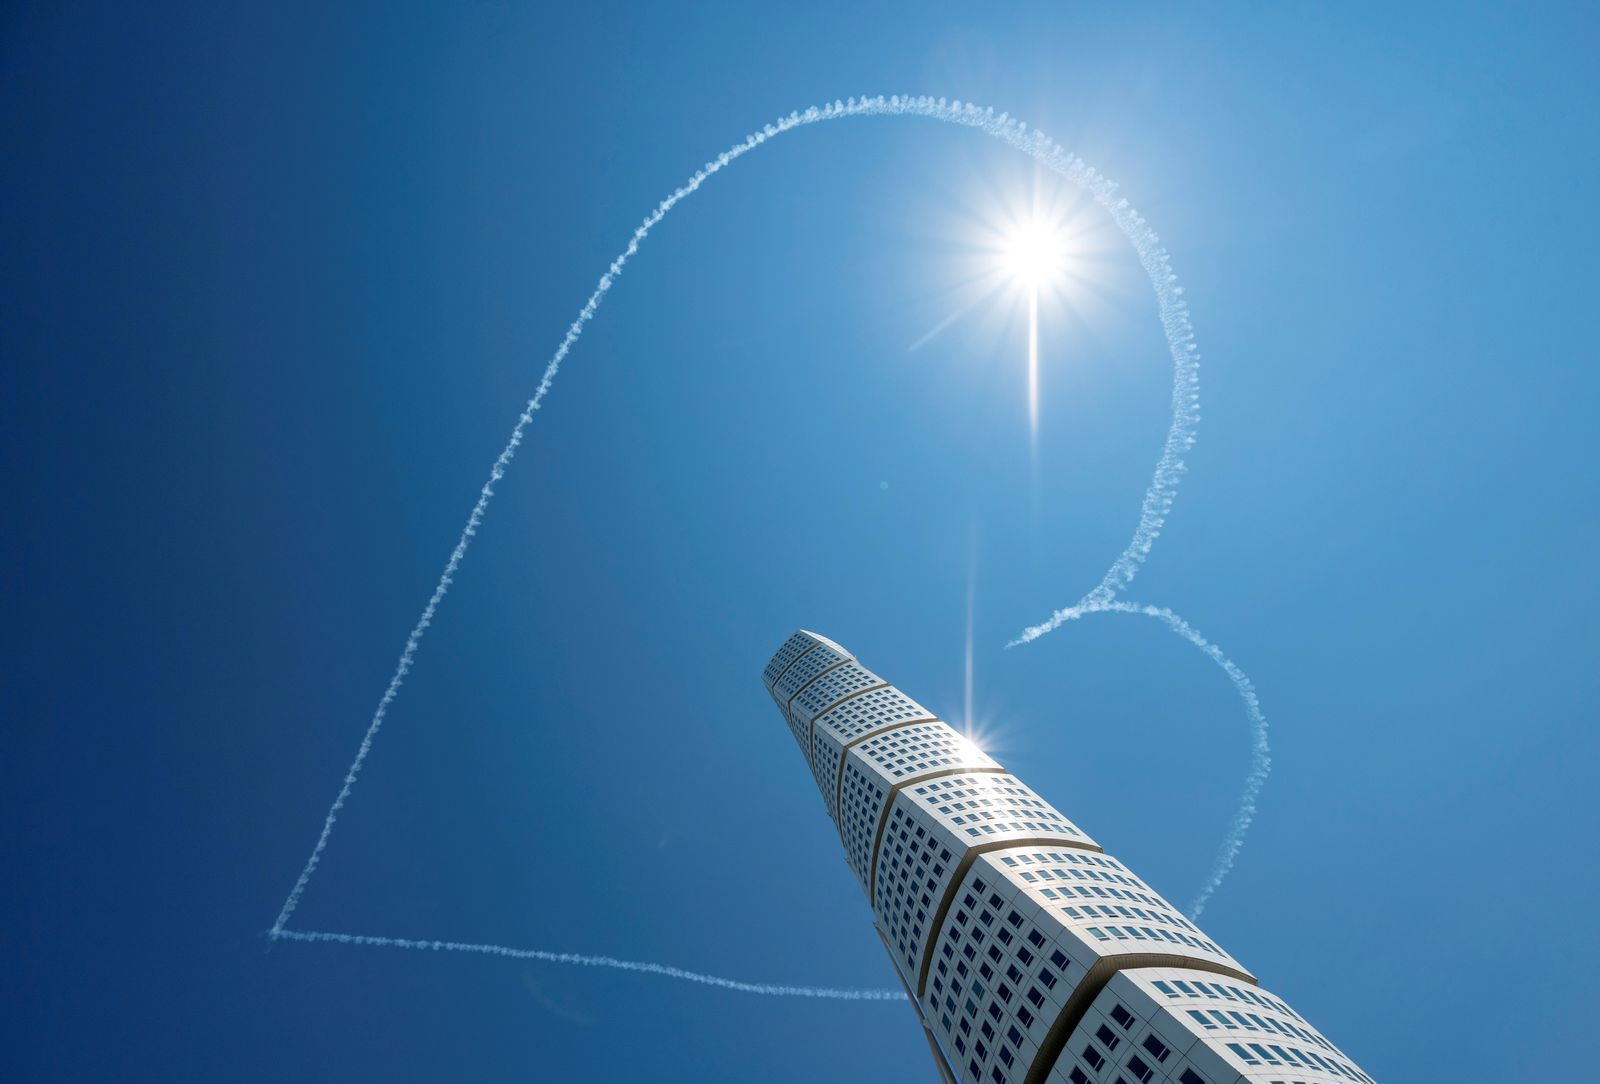 Airplanes of the Scandinavian Airshow draw a heart in the sky, above the Turning Torso building, amid the spread of the coronavirus disease (COVID-19), in Malmo